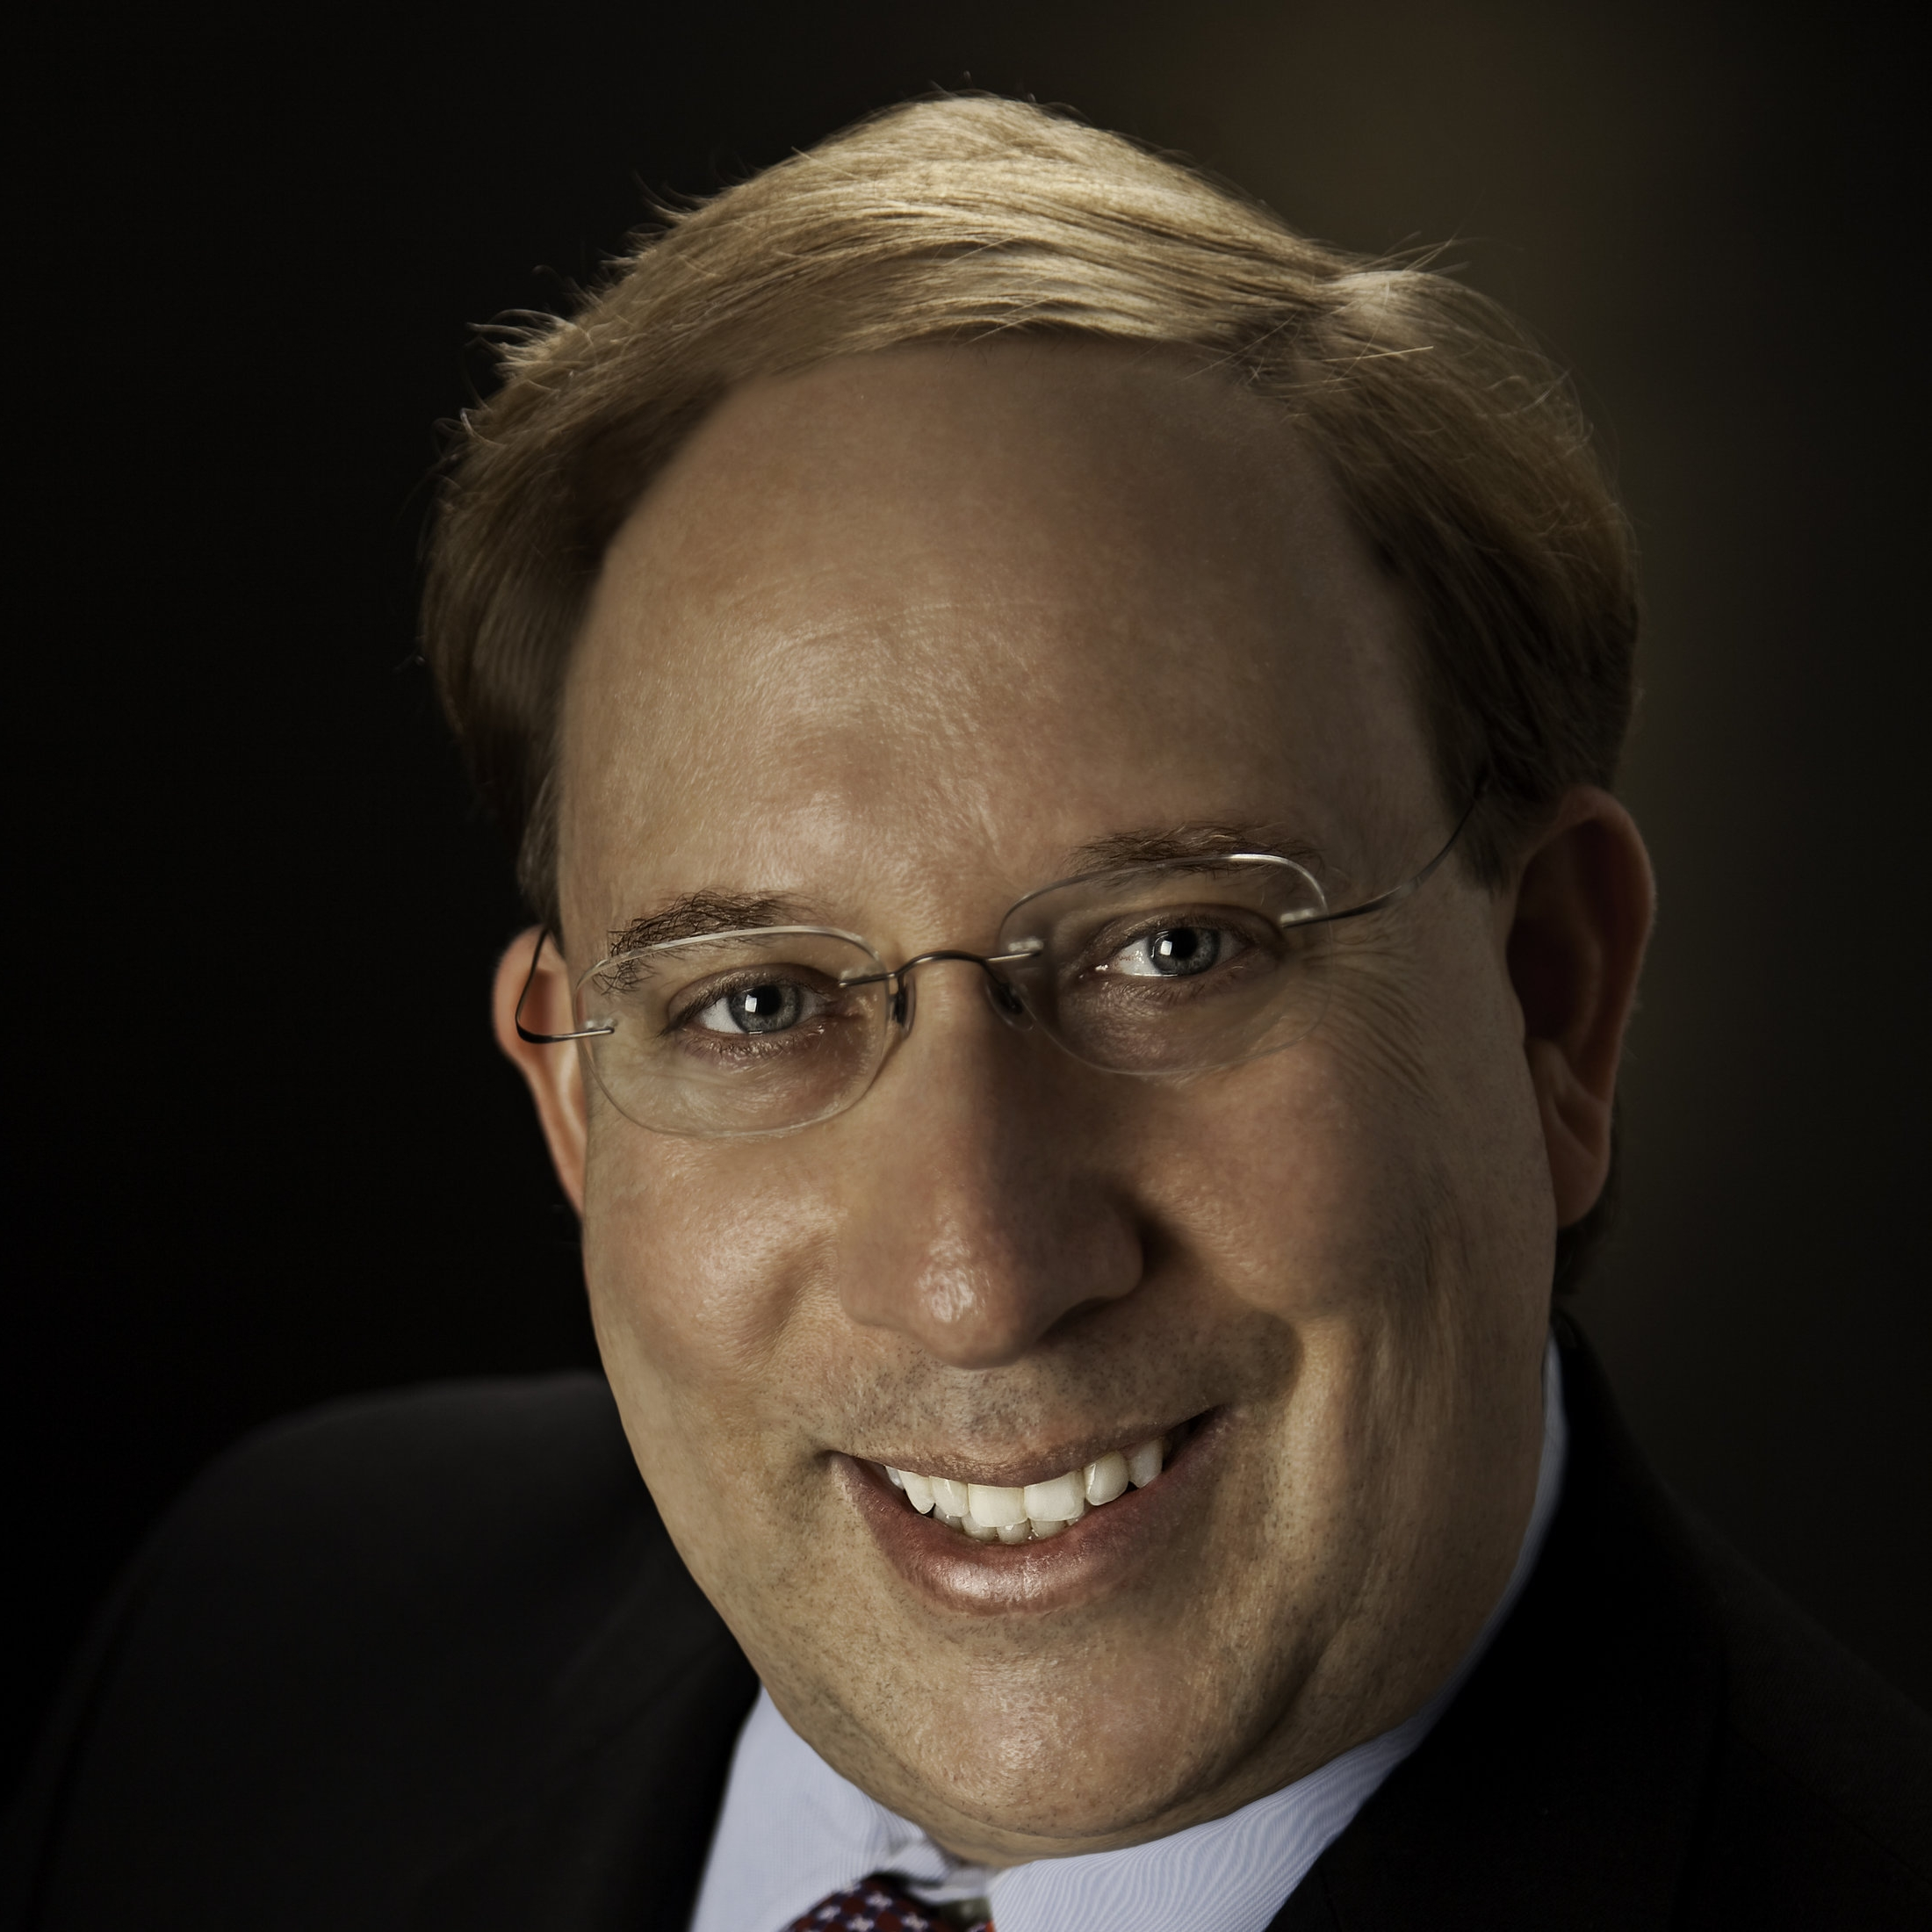 Greg Kushner - Chairman & FounderLido Consulting, Inc. & Lido Advisors, Inc.